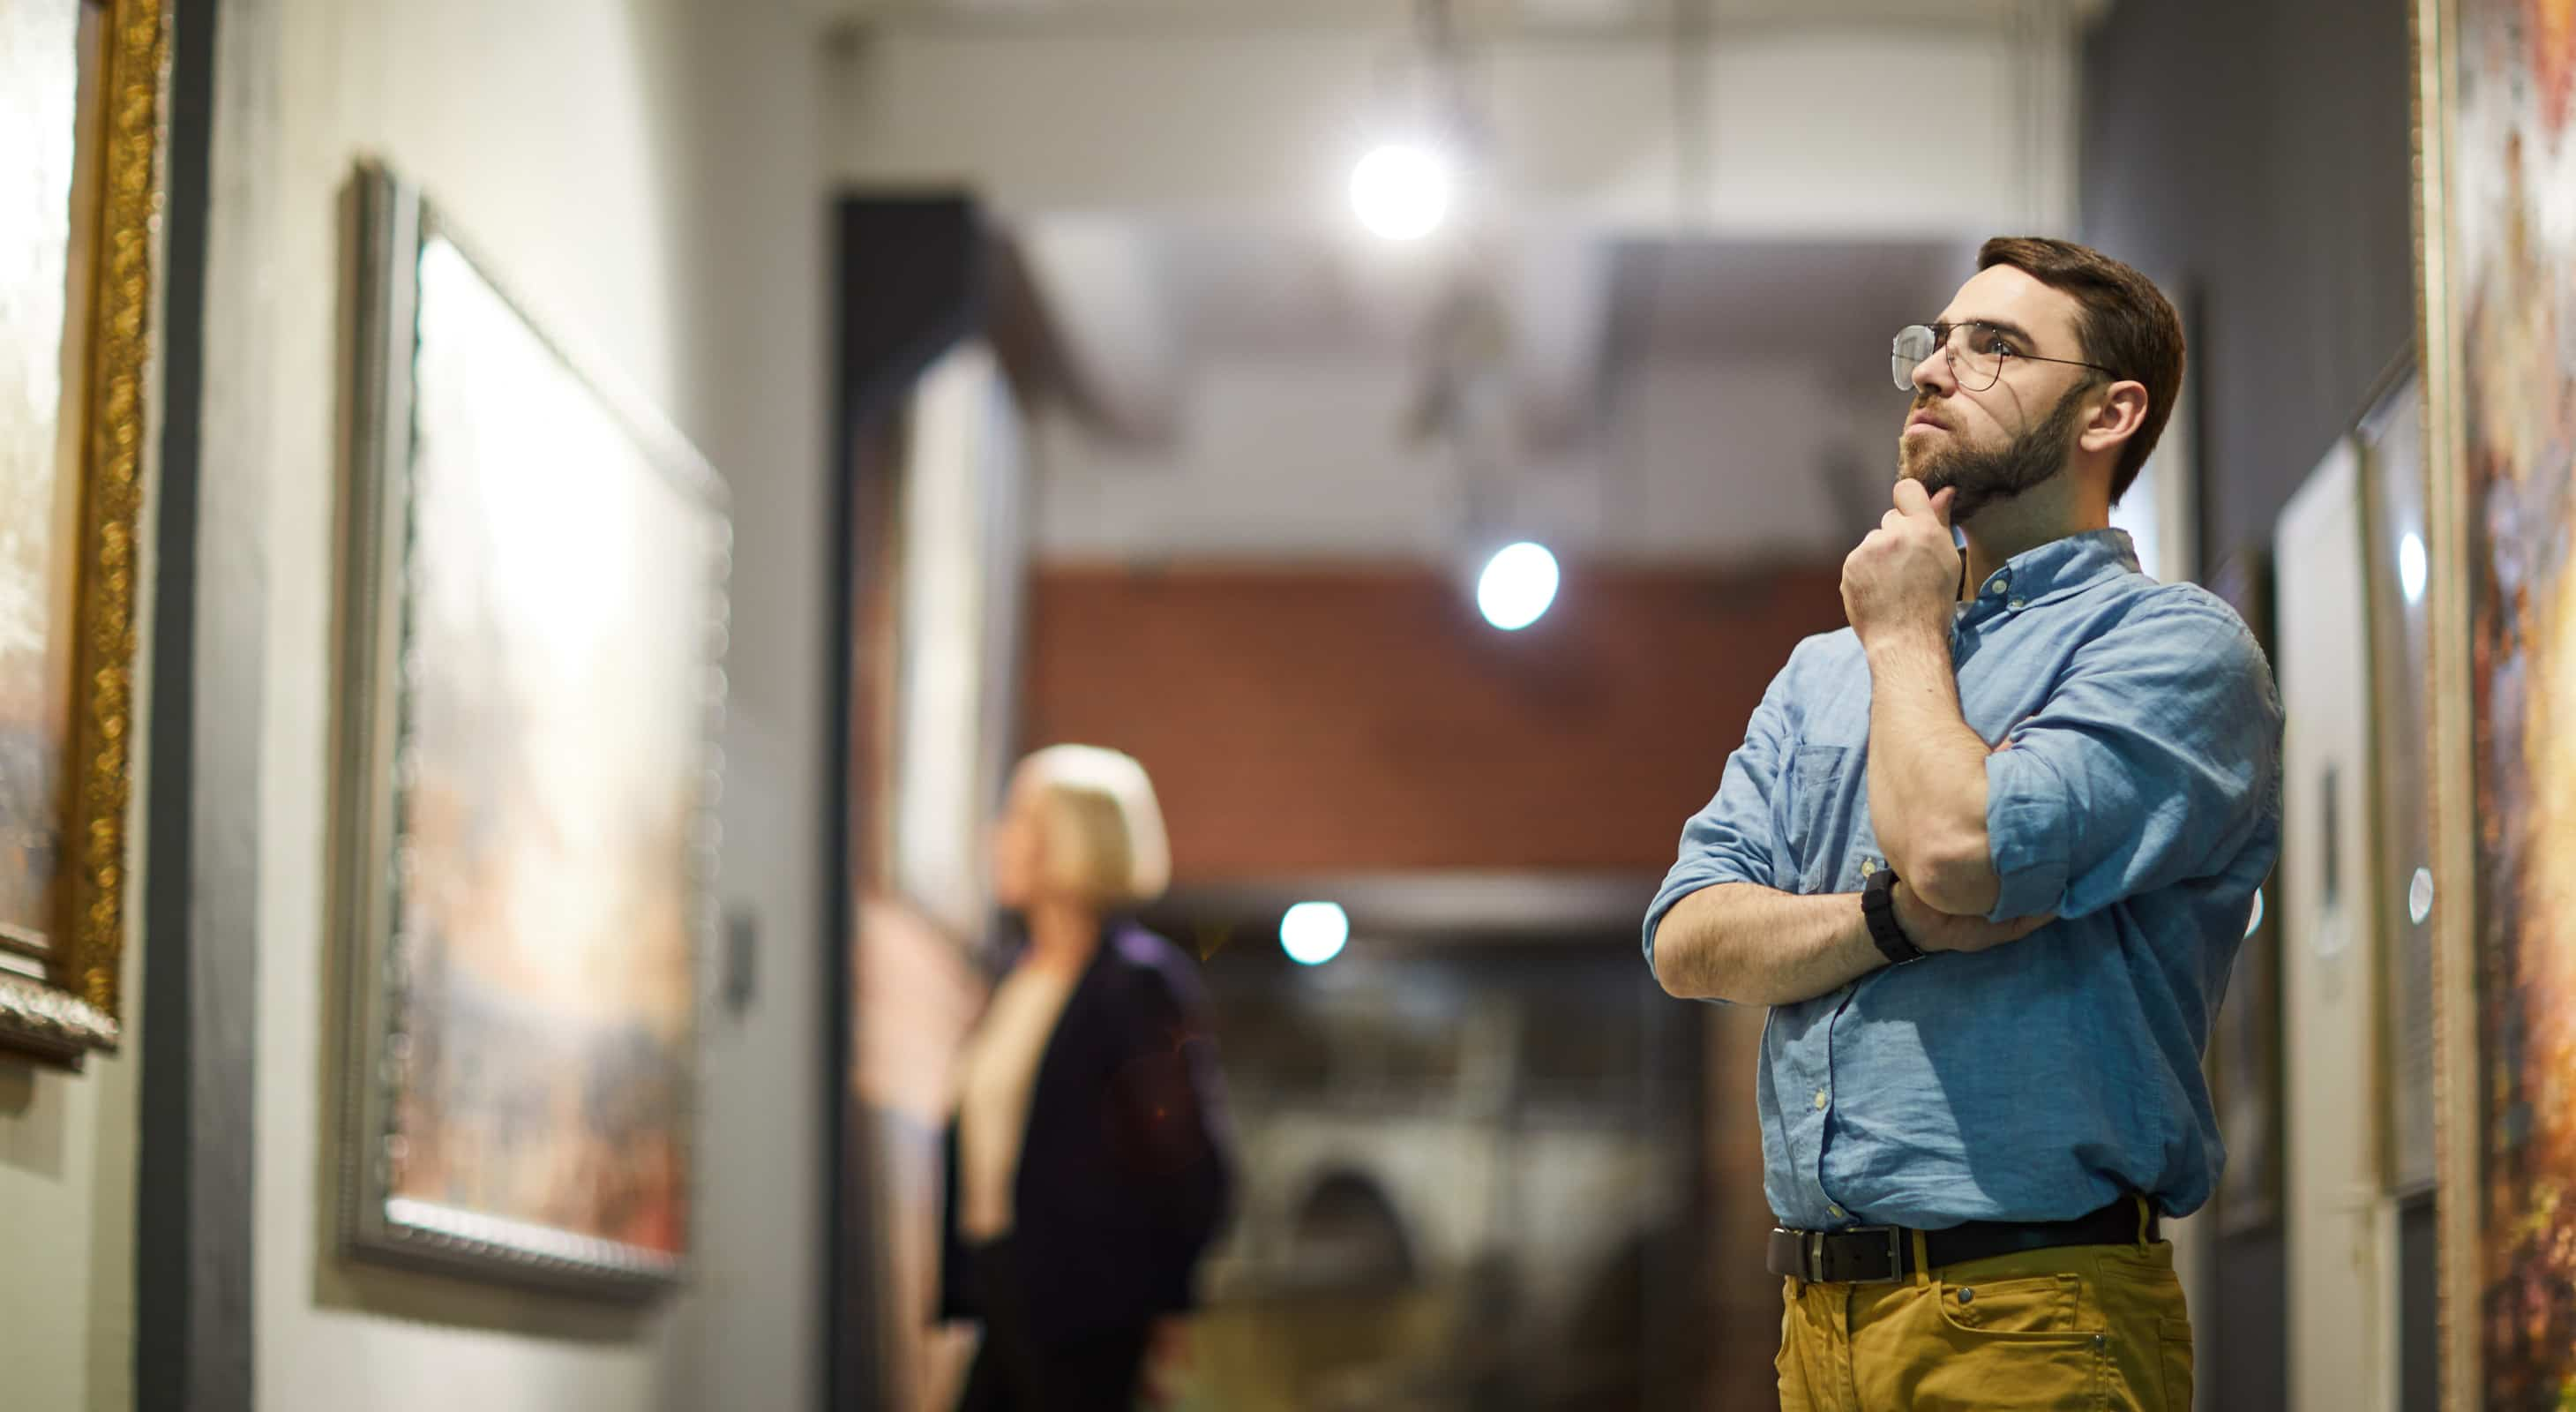 A man with a beard looking at a painting in a museum